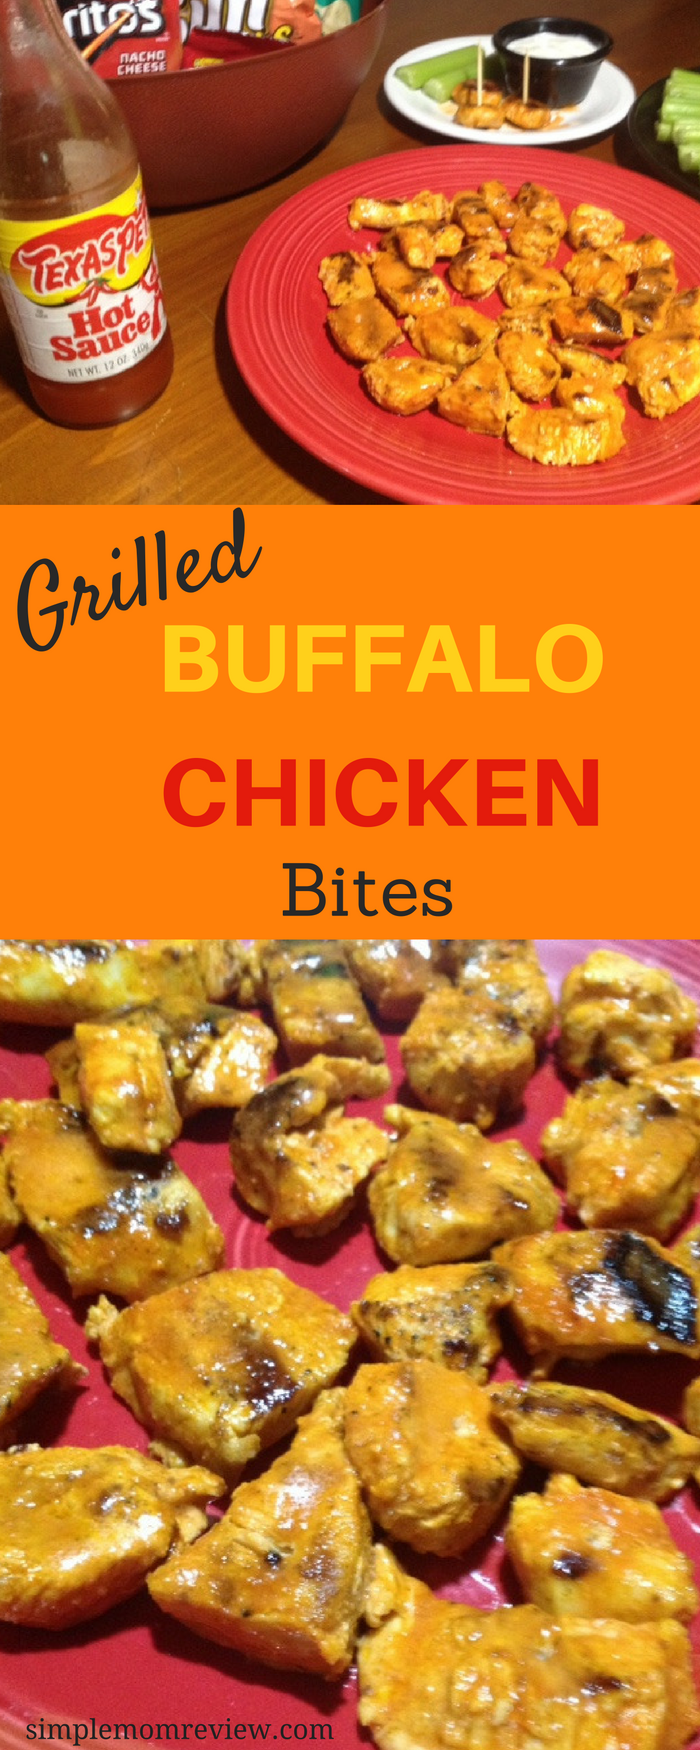 Grilled buffalo chicken bites (4)